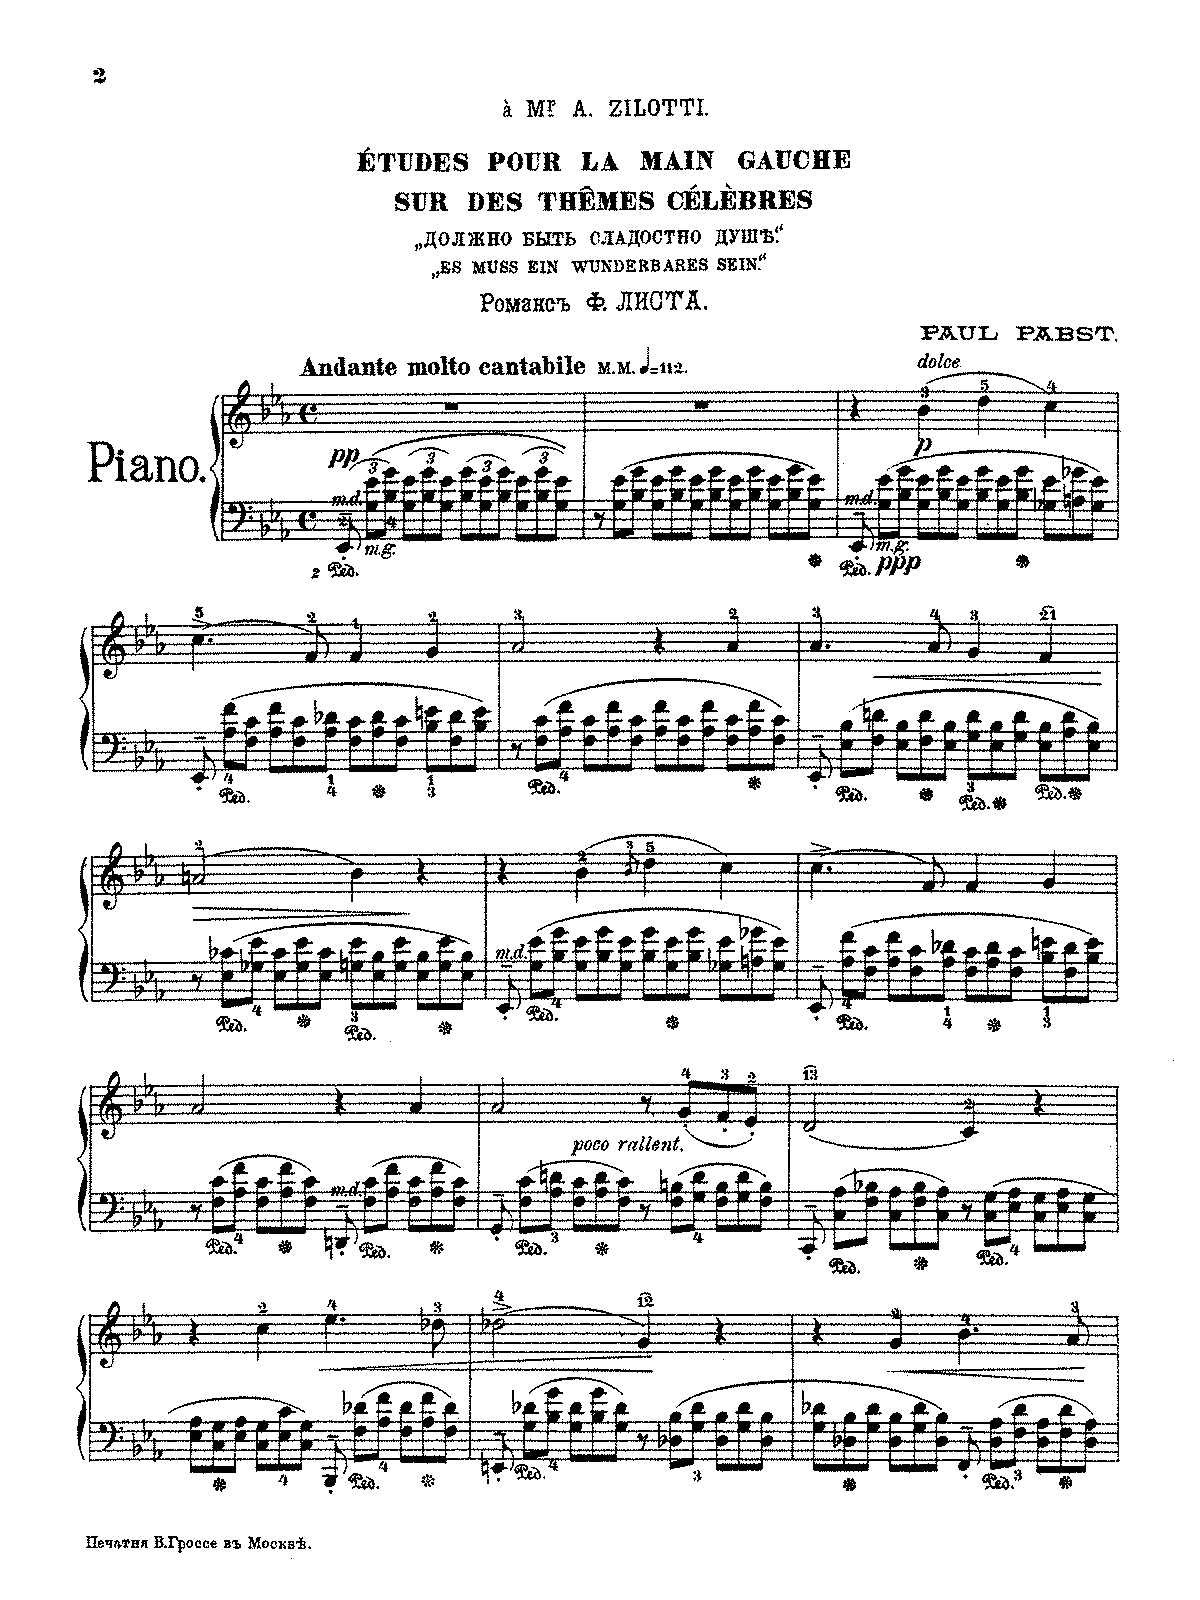 Pabst - Op.misc - Etudes for the Left Hand on Famous Themes.pdf